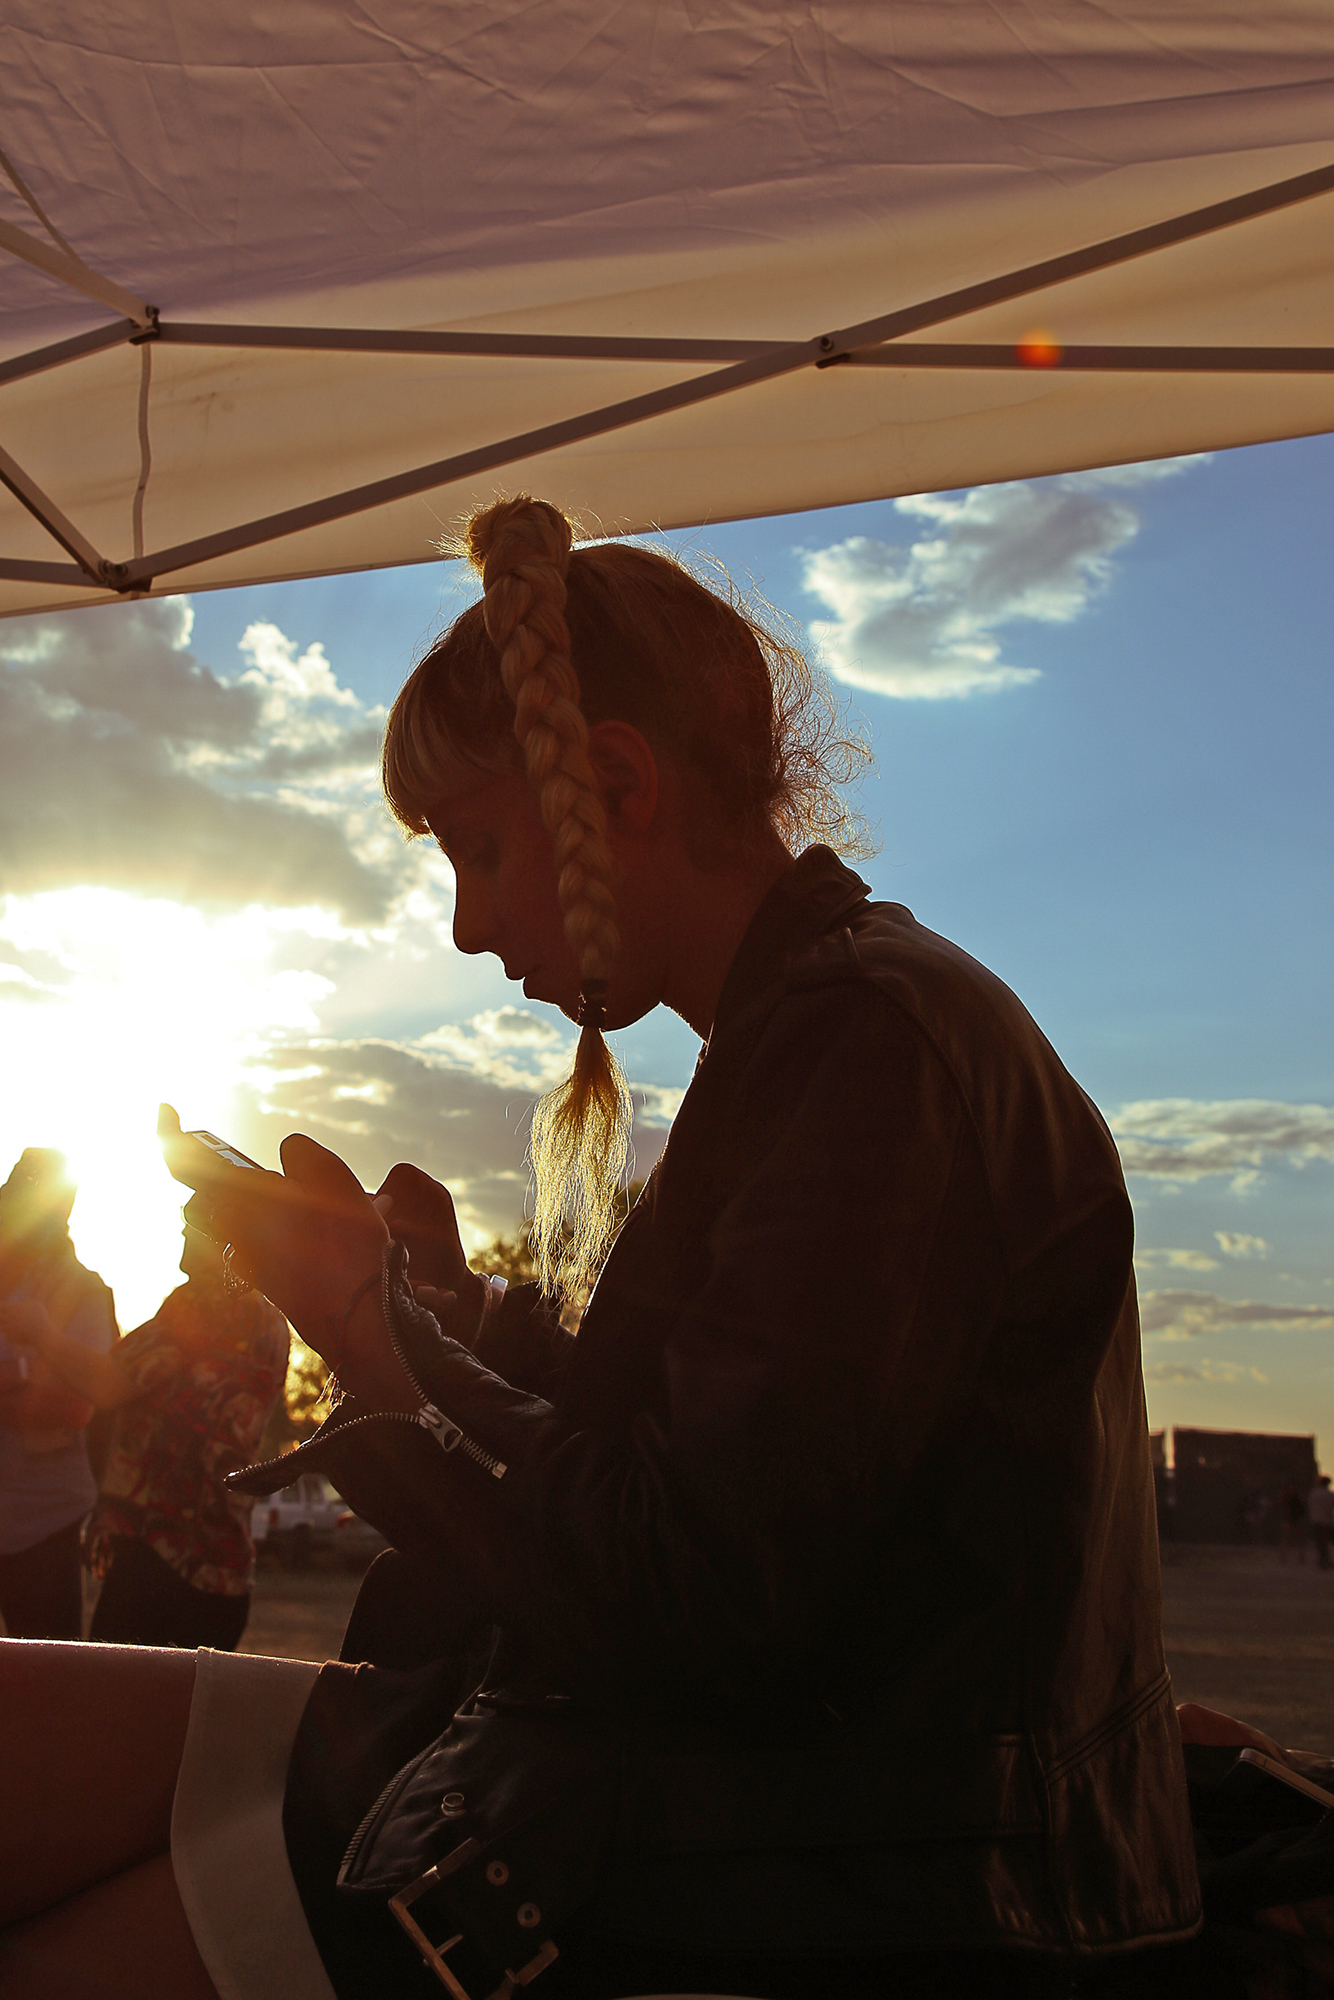 Woman on her phone with the sunset in the background